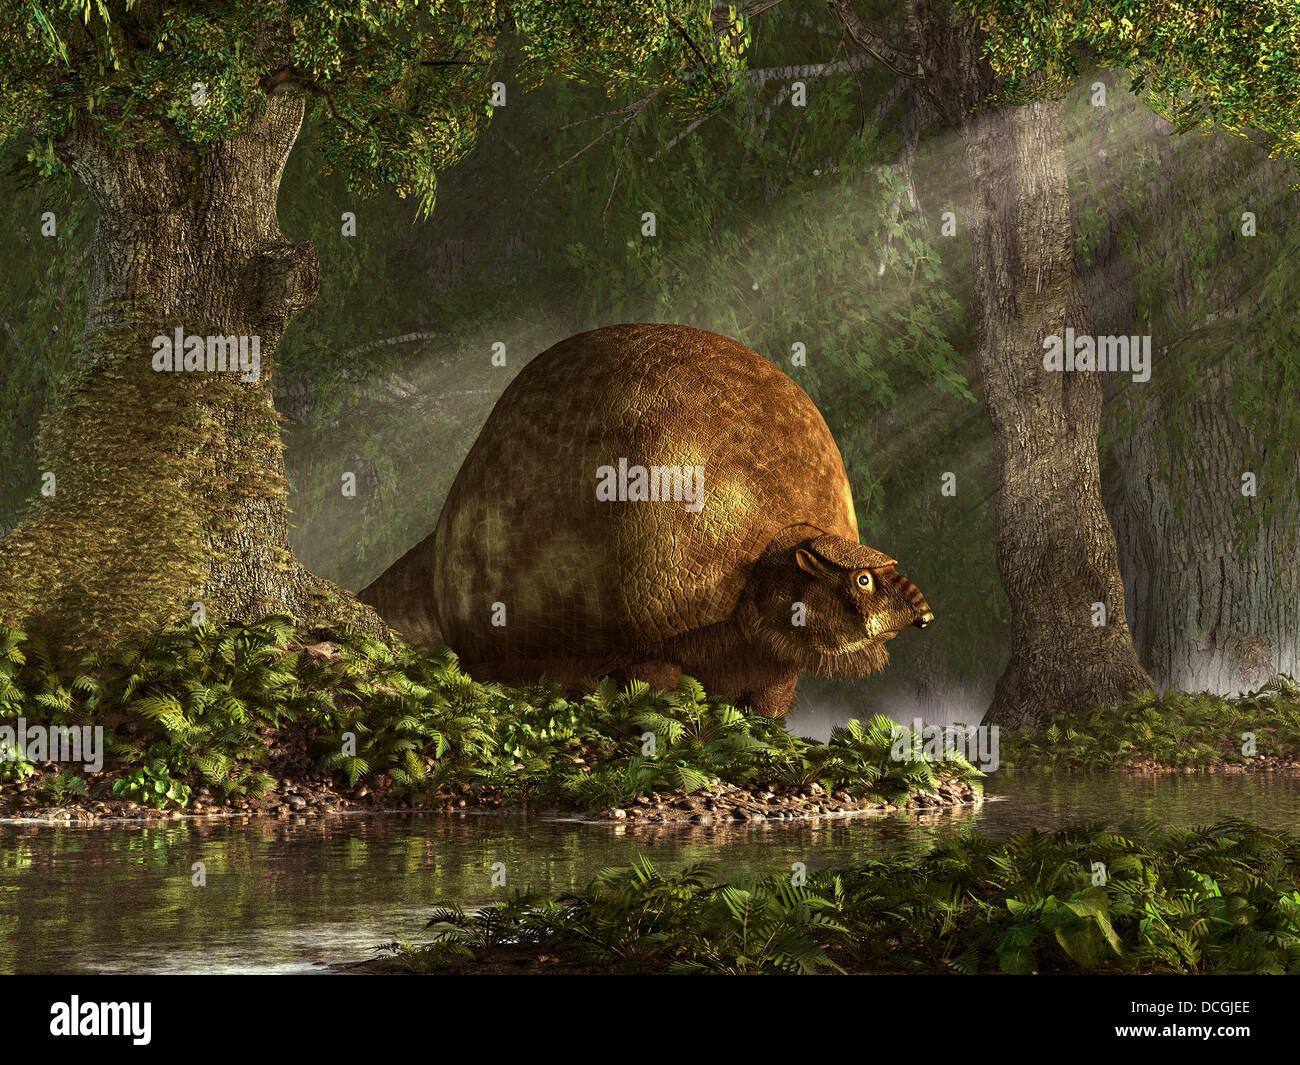 A large Glyptodon stands near the edge of a stream. Stock Photo